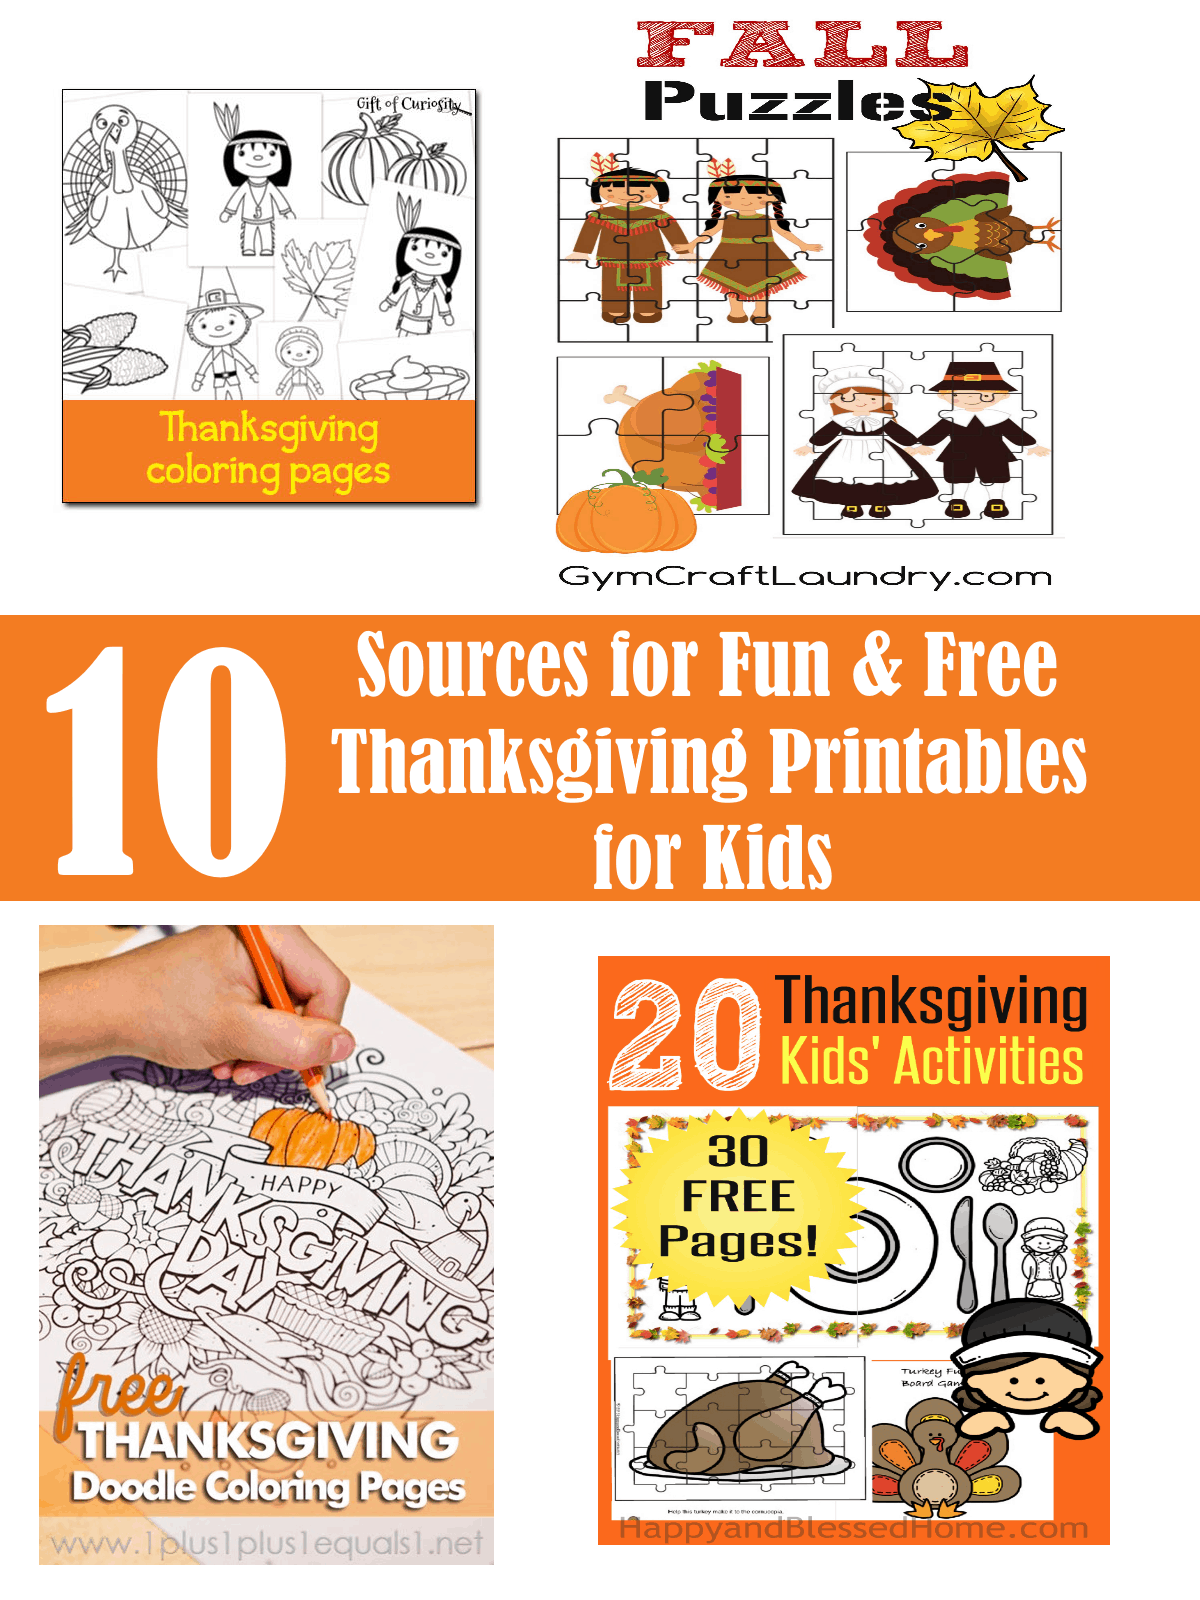 fun-and-free-thanksgiving-printables